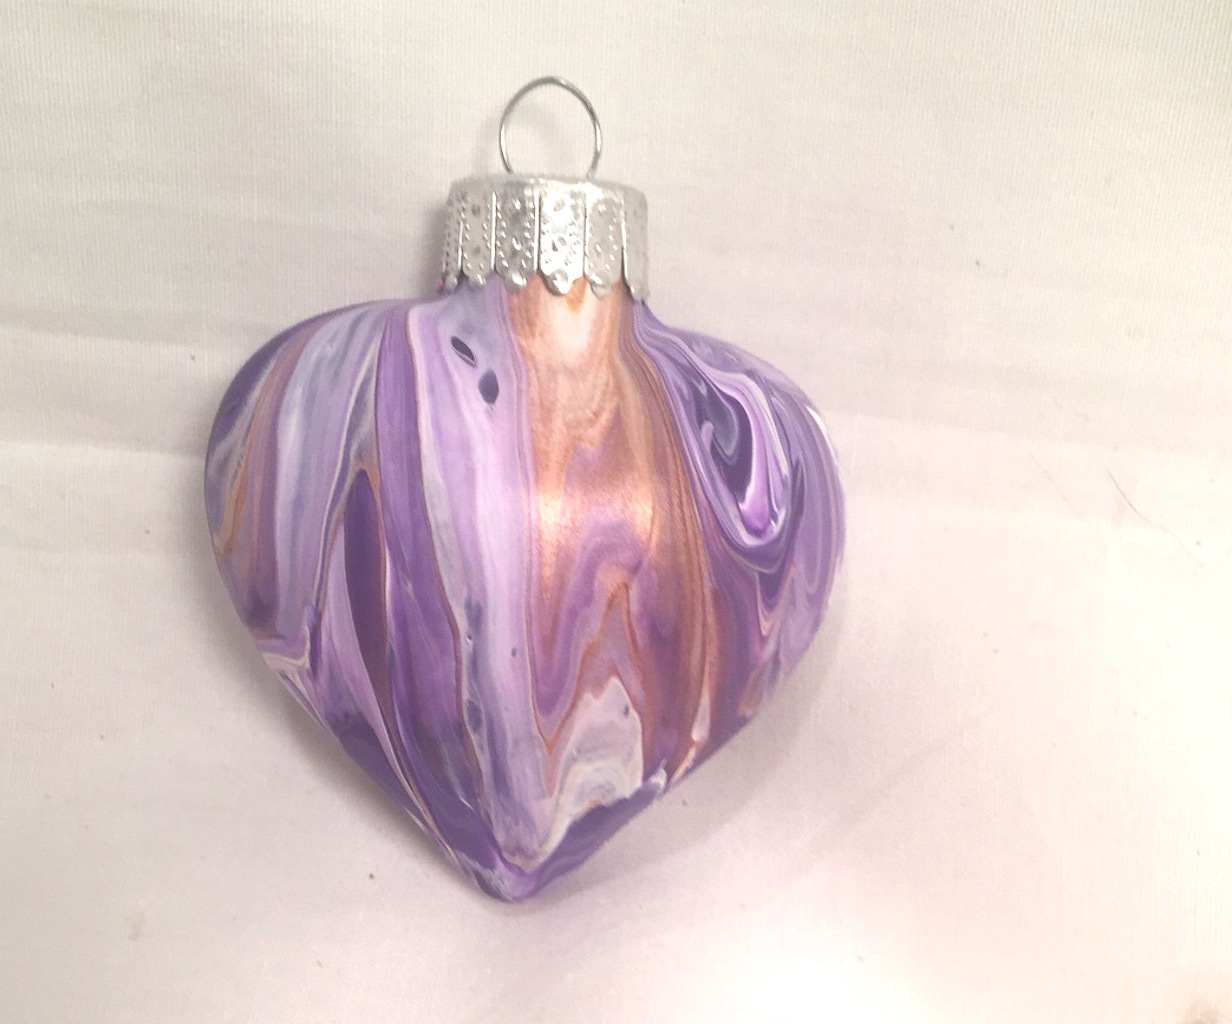 Purple Gold & White Acrylic Pour Swirl Painted Glass Heart Ornament Ribbon Top